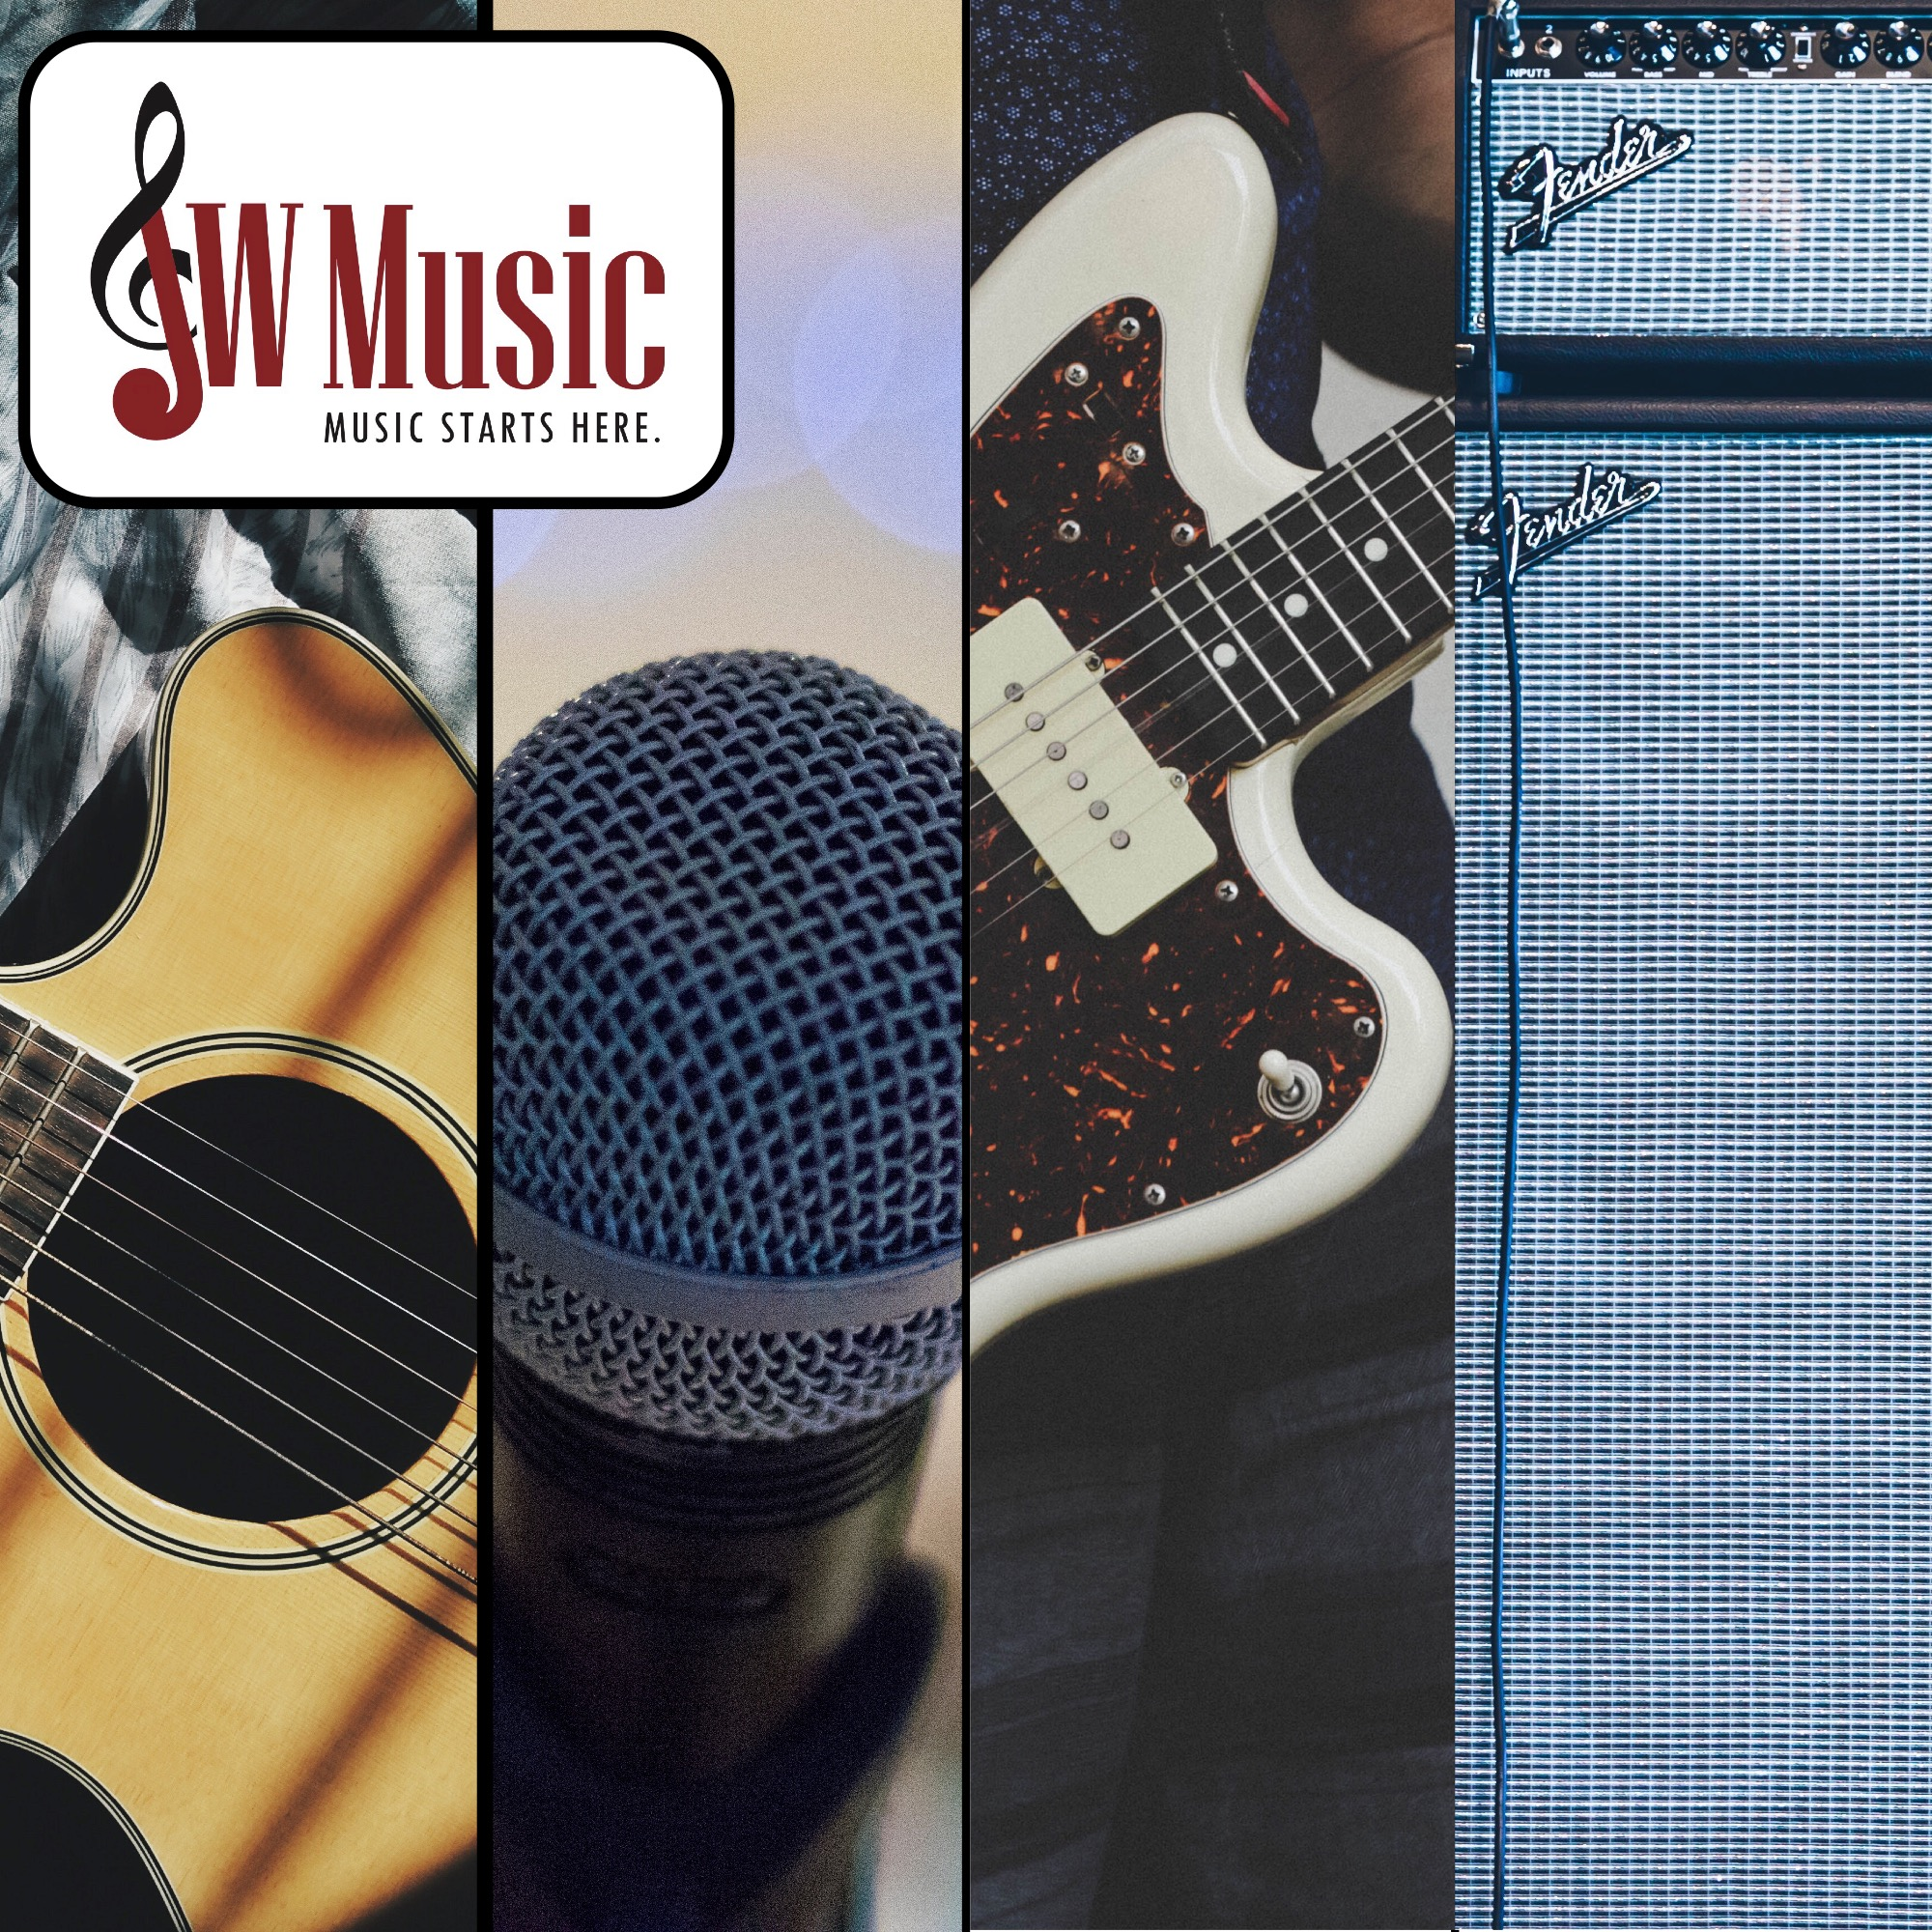 JW Music will match or beat any advertised price!